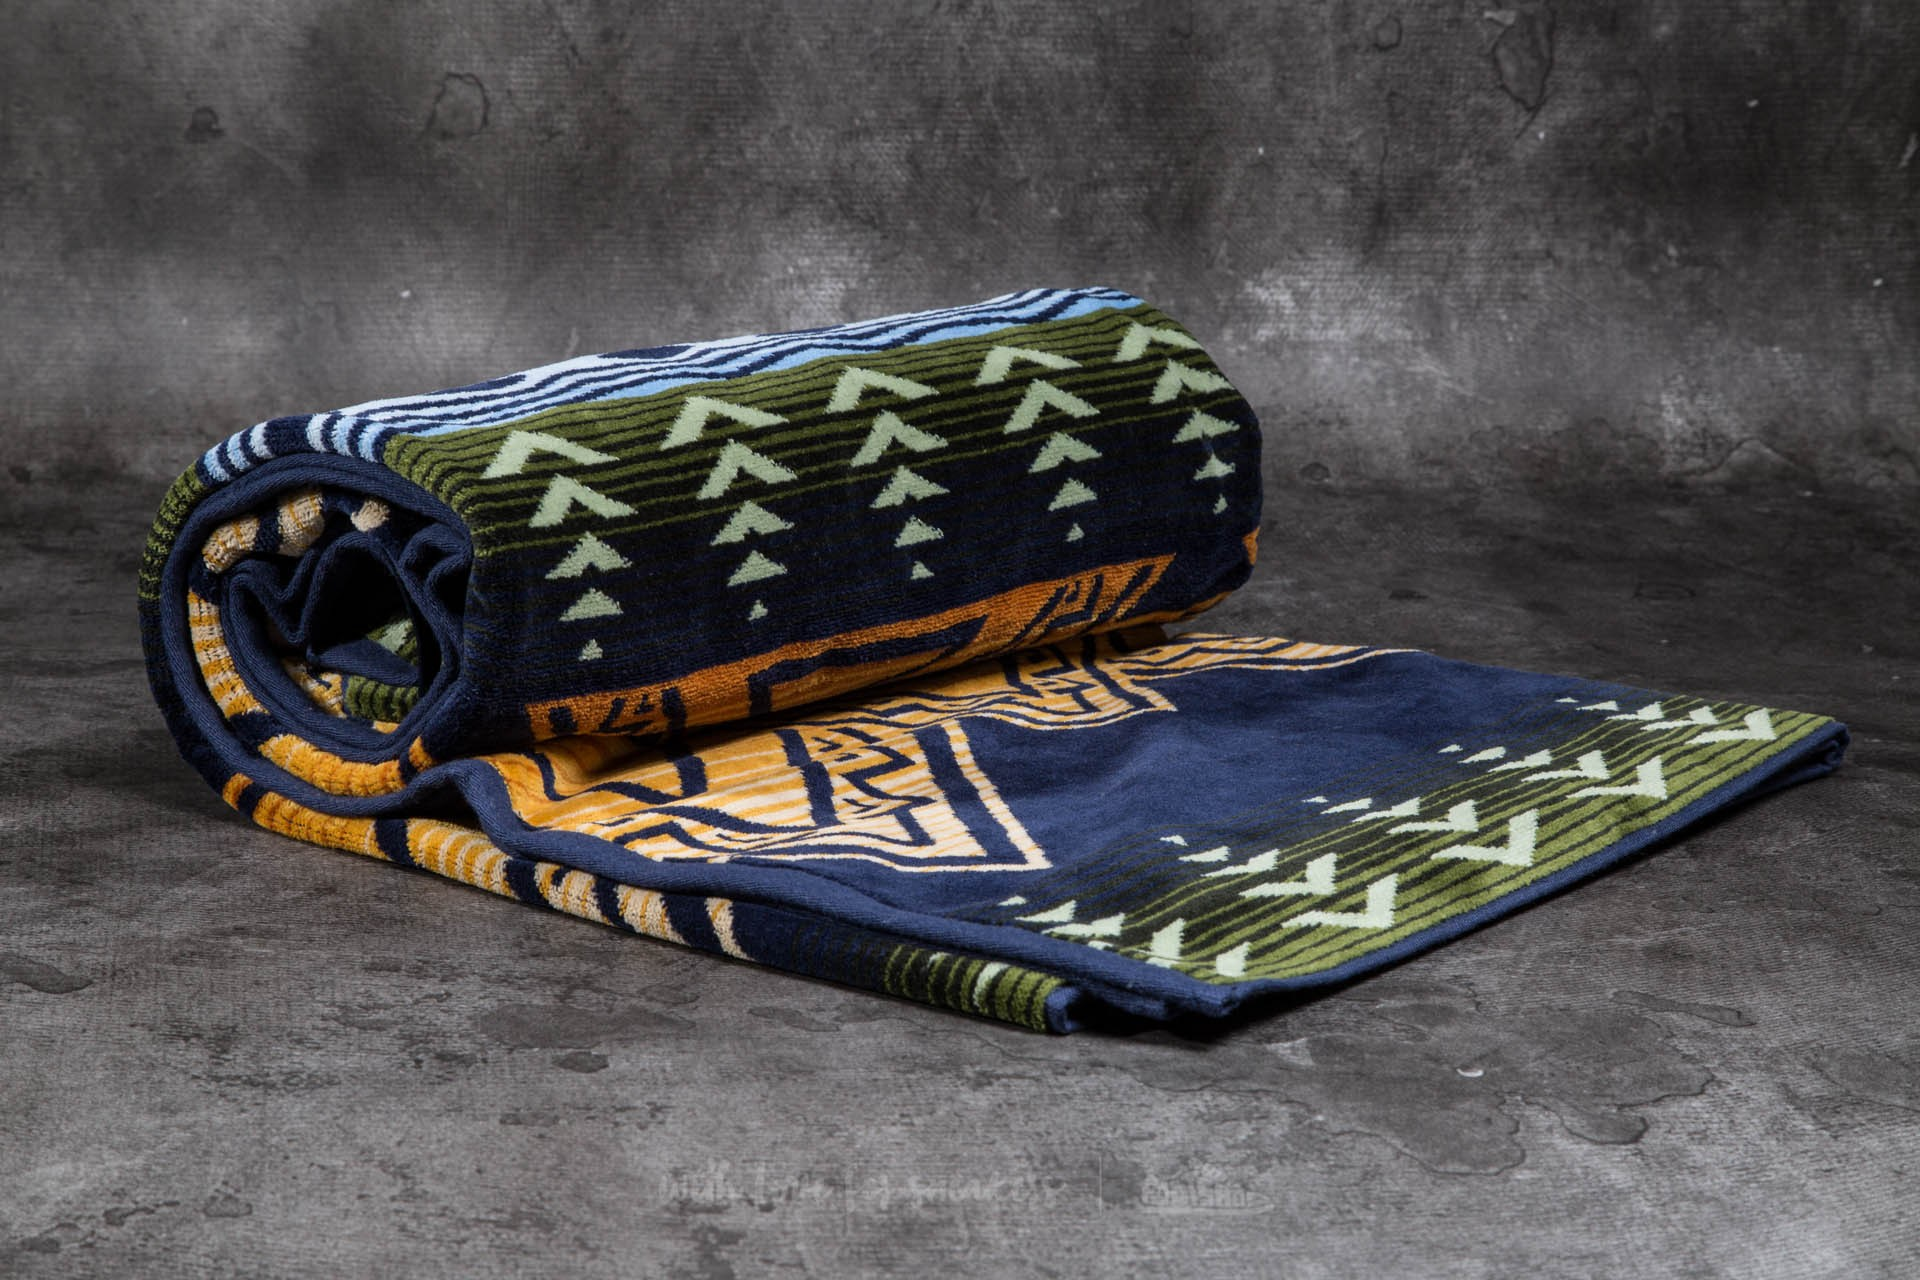 Pendleton Oversized Jacquard Towel Midnight American Treasures Footshop – FR